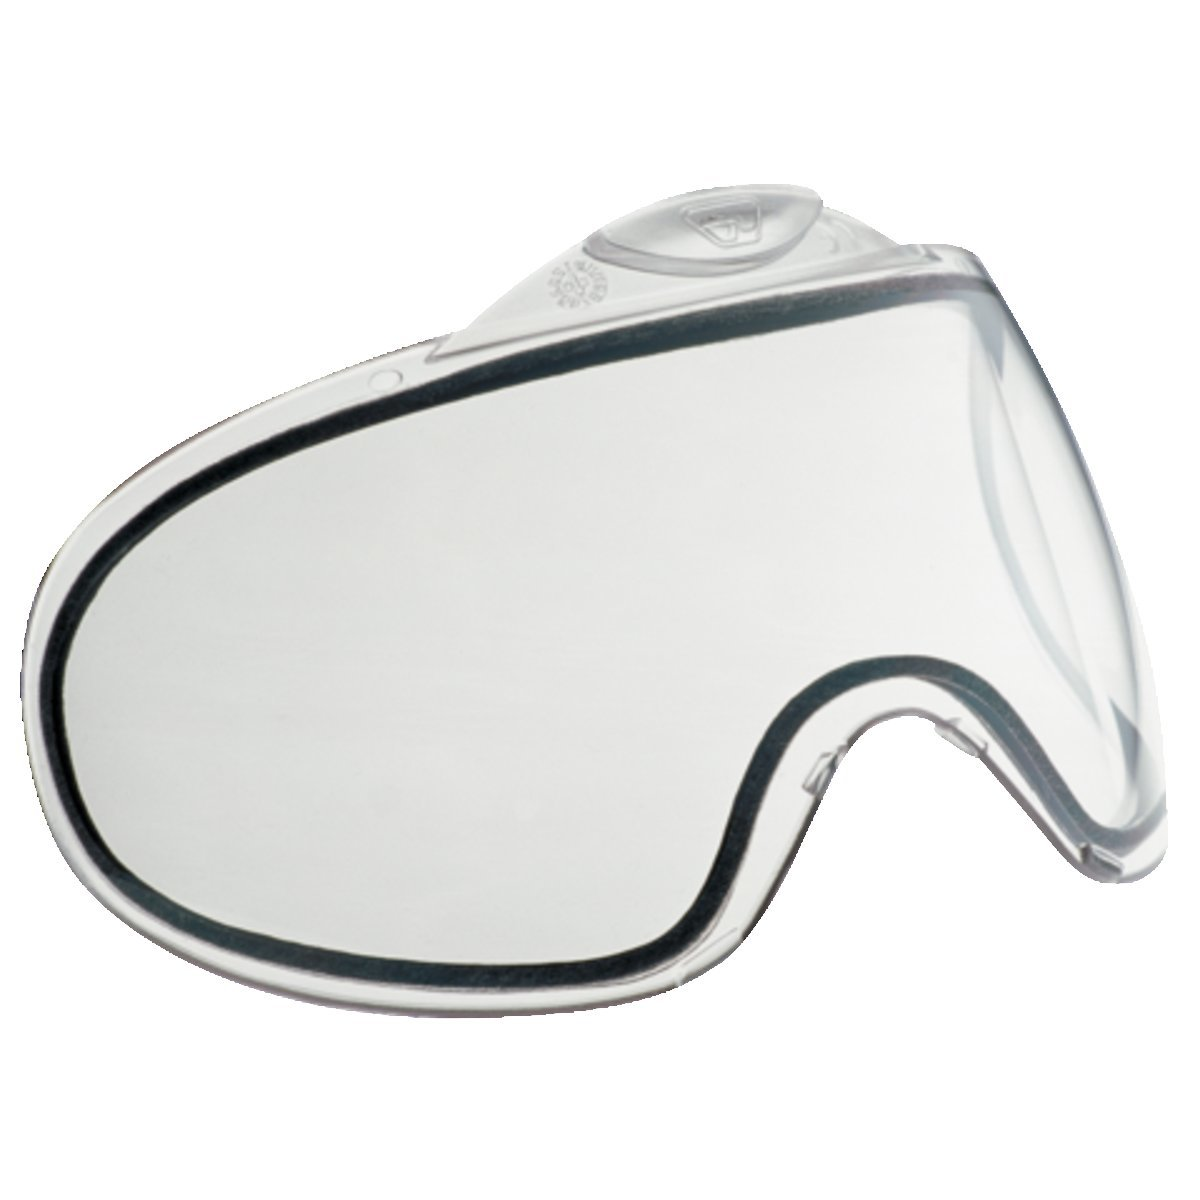 View larger image of Dye Proto Switch Thermal Goggle Lens